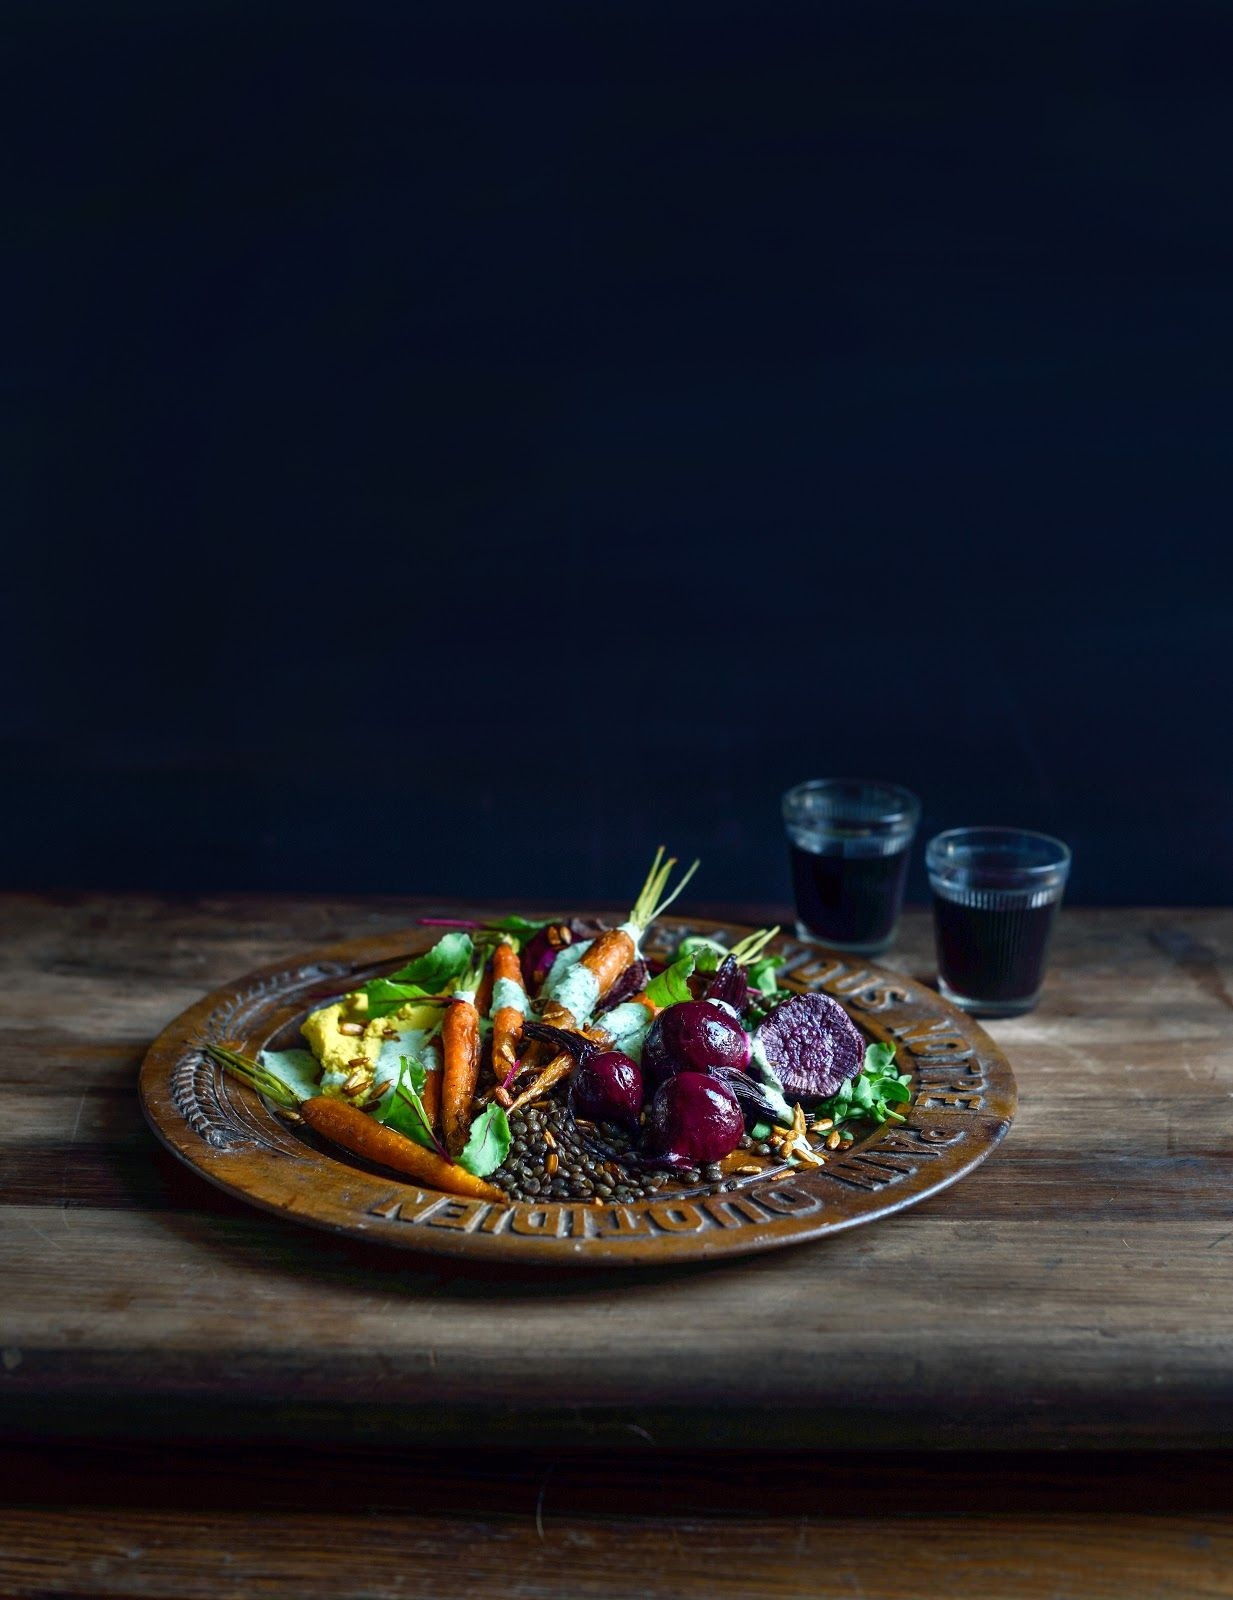 From The Kitchen: Autumn Potager Vegetable Salad with Hummus, Lentils and Herby Feta Dressing